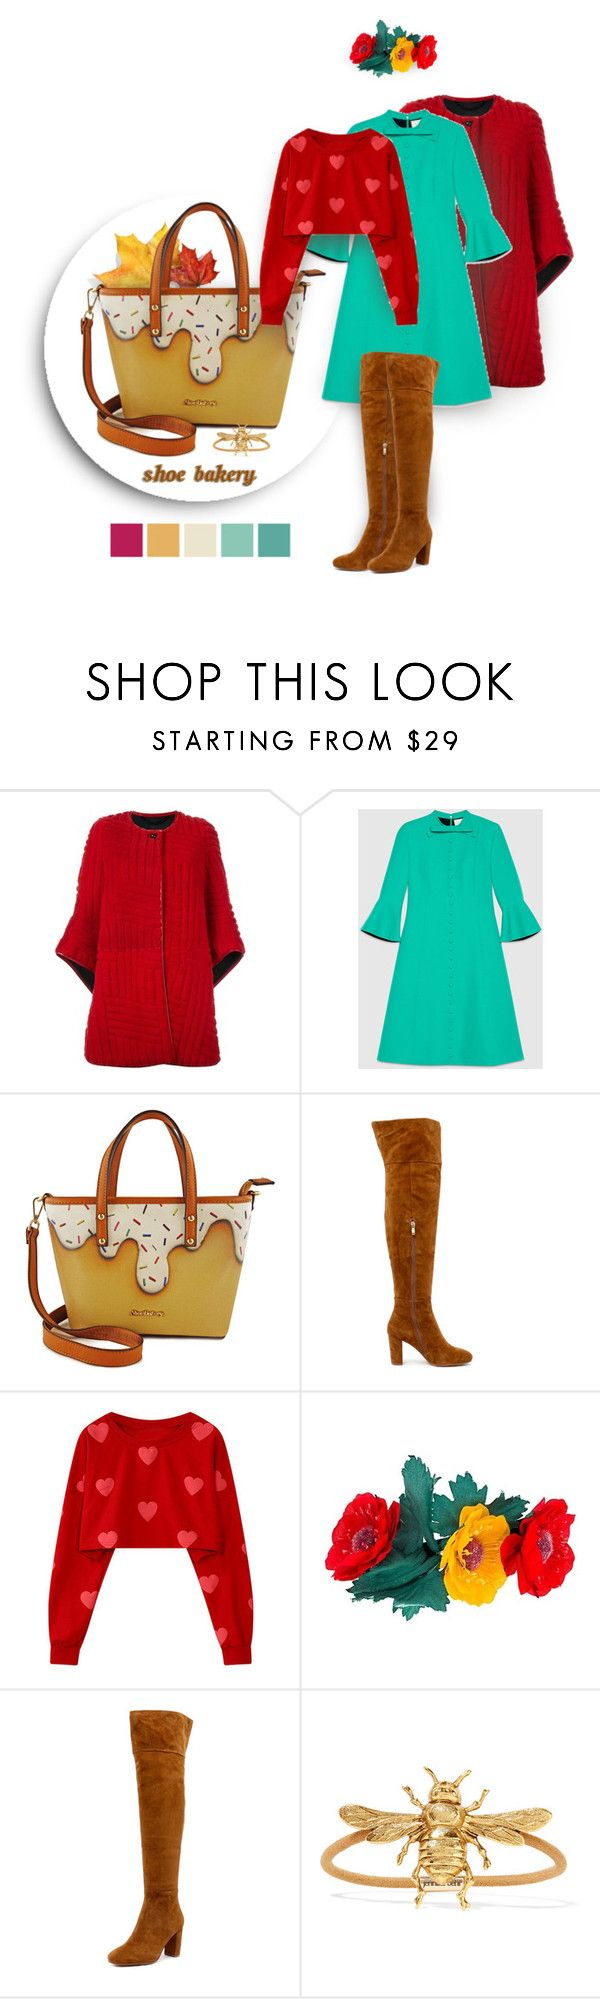 """""""Shoe Bakery Giveaway"""" by ante-panda ❤ liked on Polyvore featuring Kenzo, Gucci, Top End, Jennifer Behr, kenzo, gucci and shoebakery"""